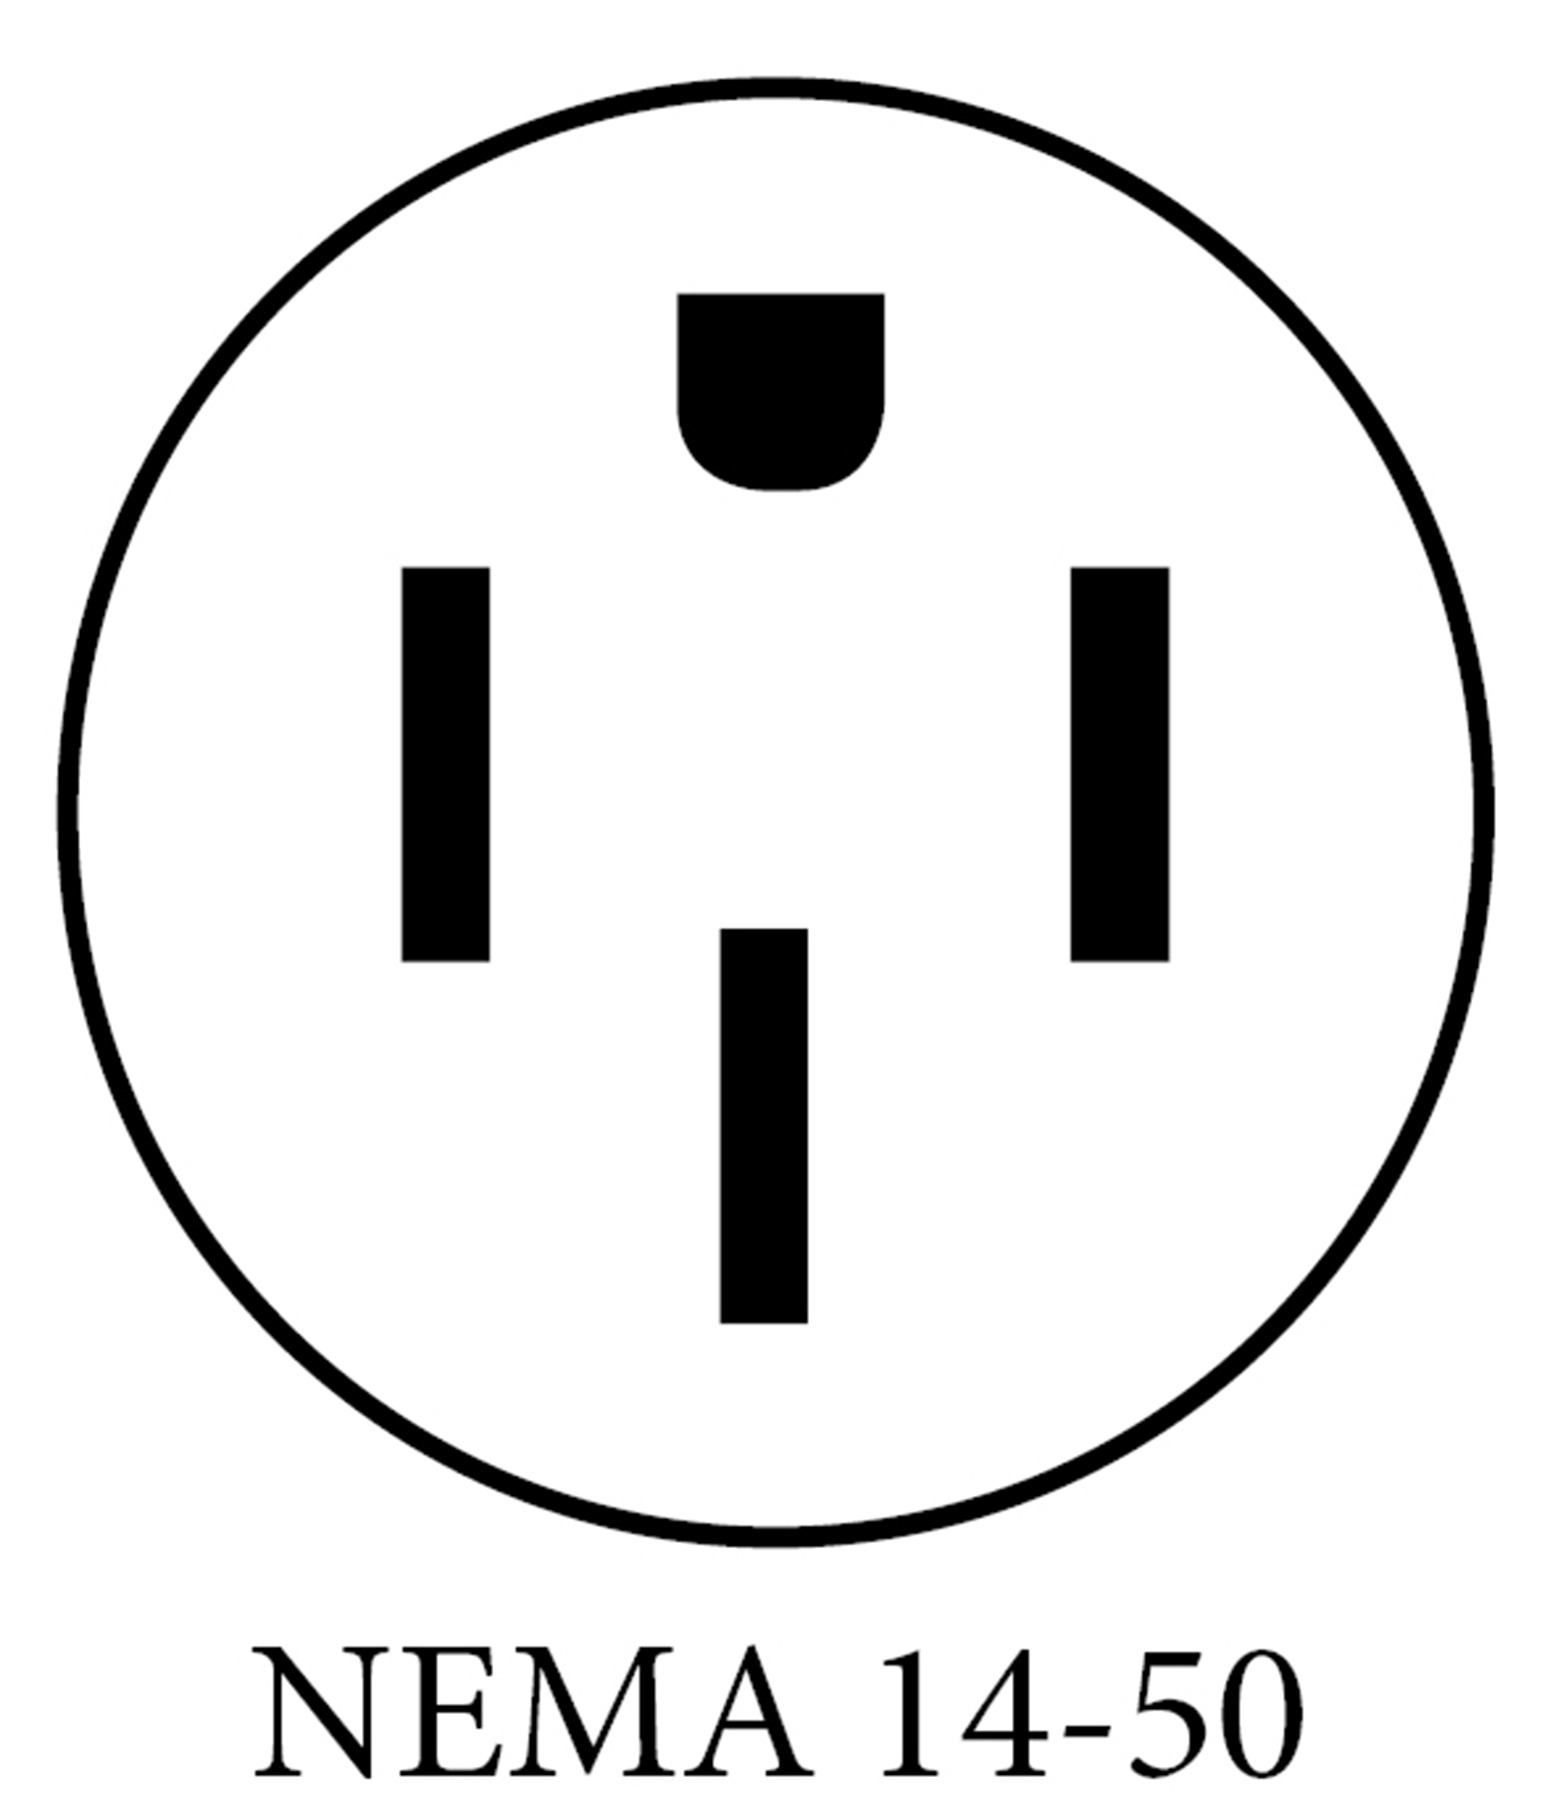 Nema 14 50 Wiring Diagram : 25 Wiring Diagram Images